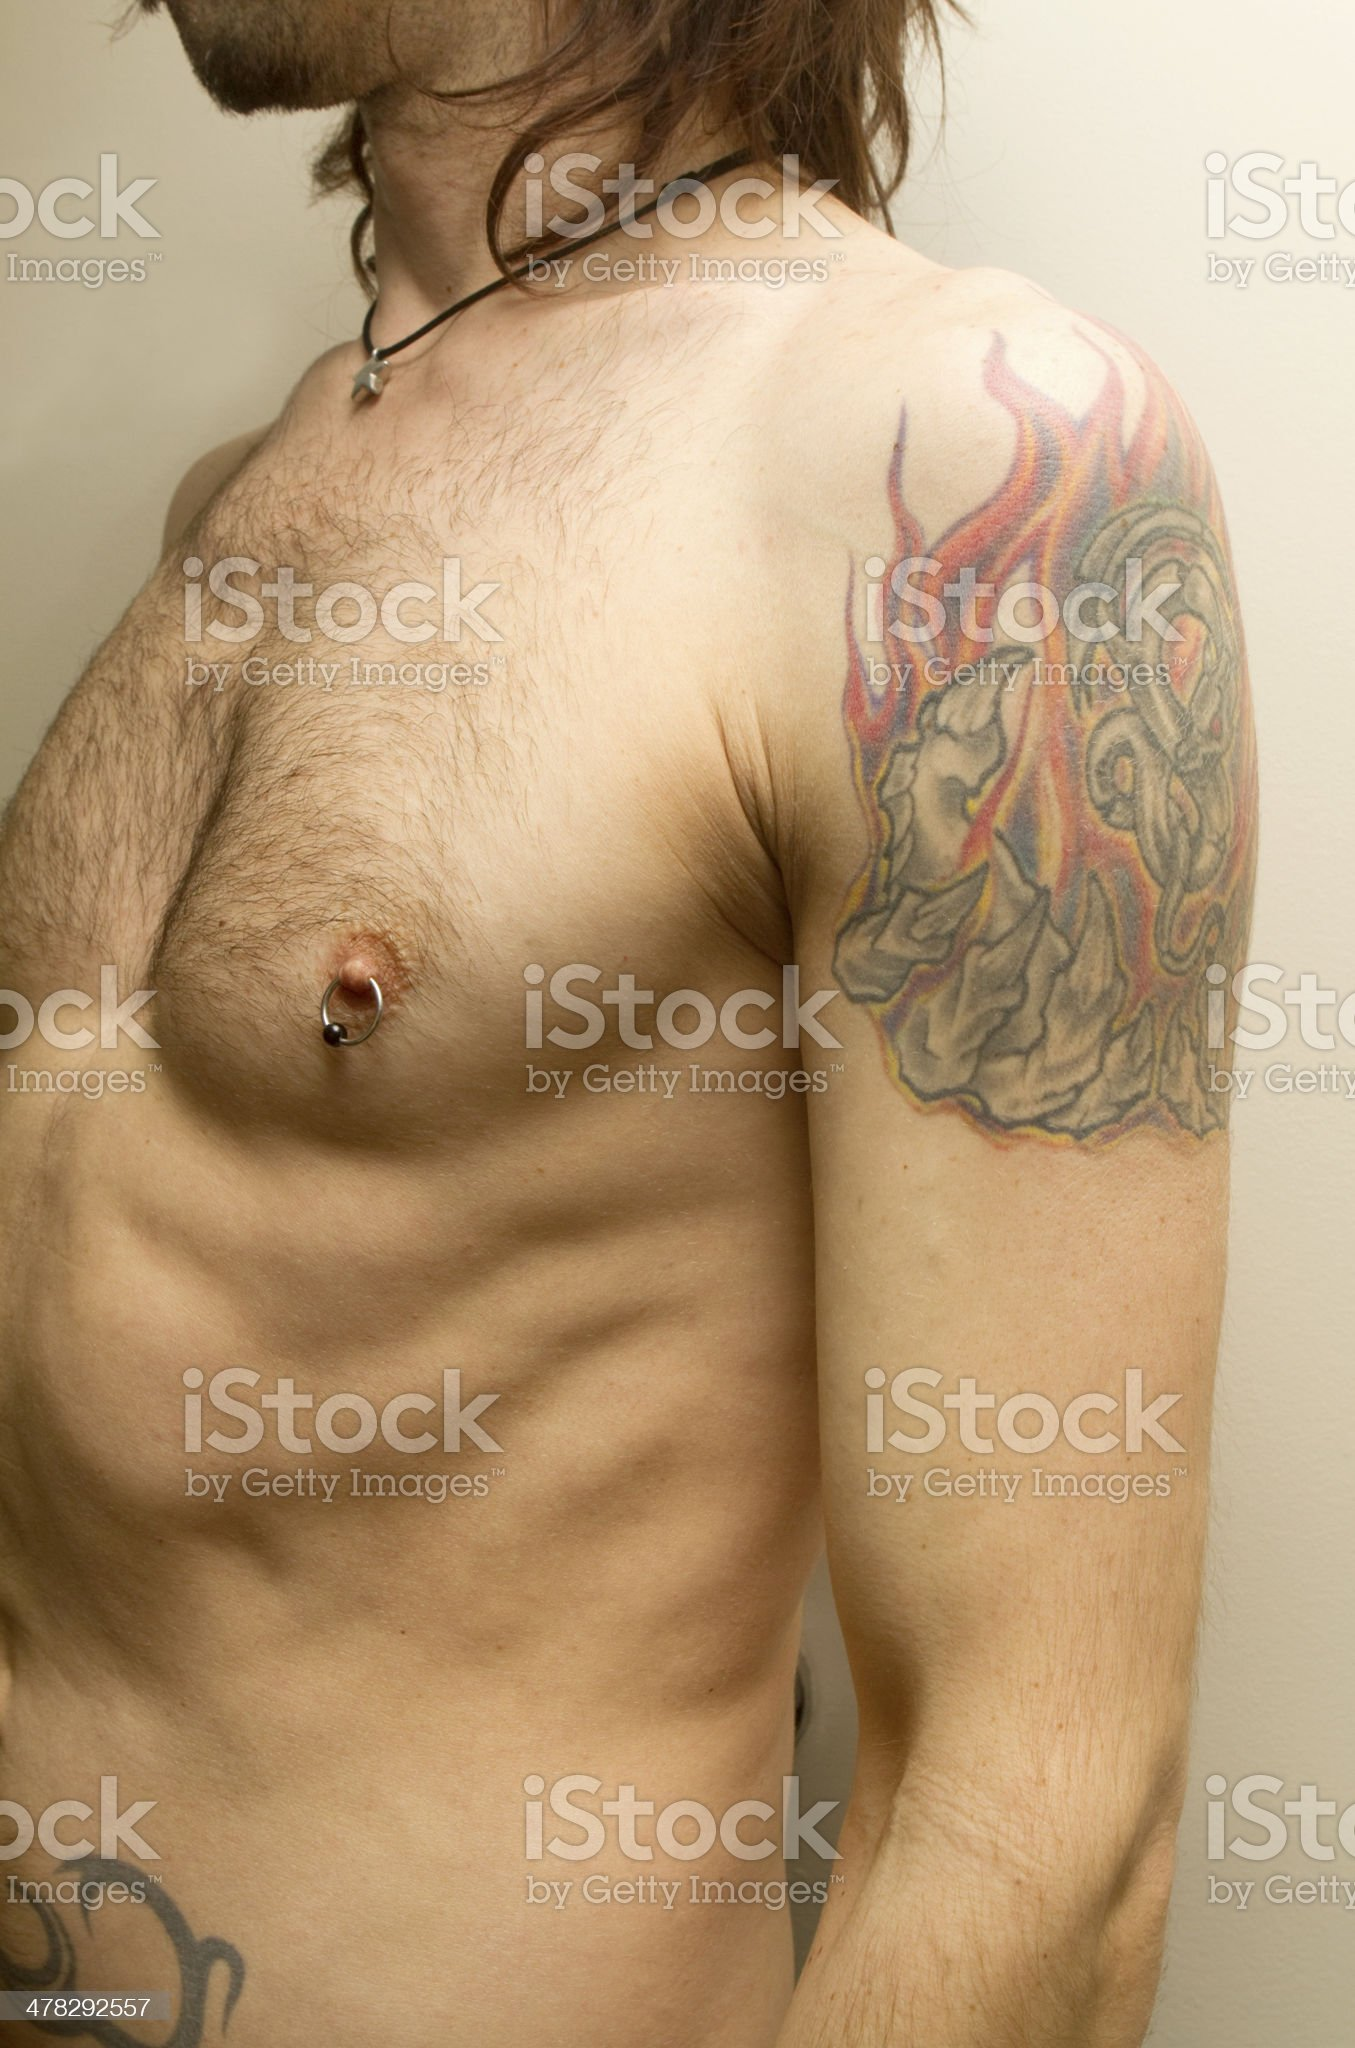 Arm and Chest Close-Up royalty-free stock photo